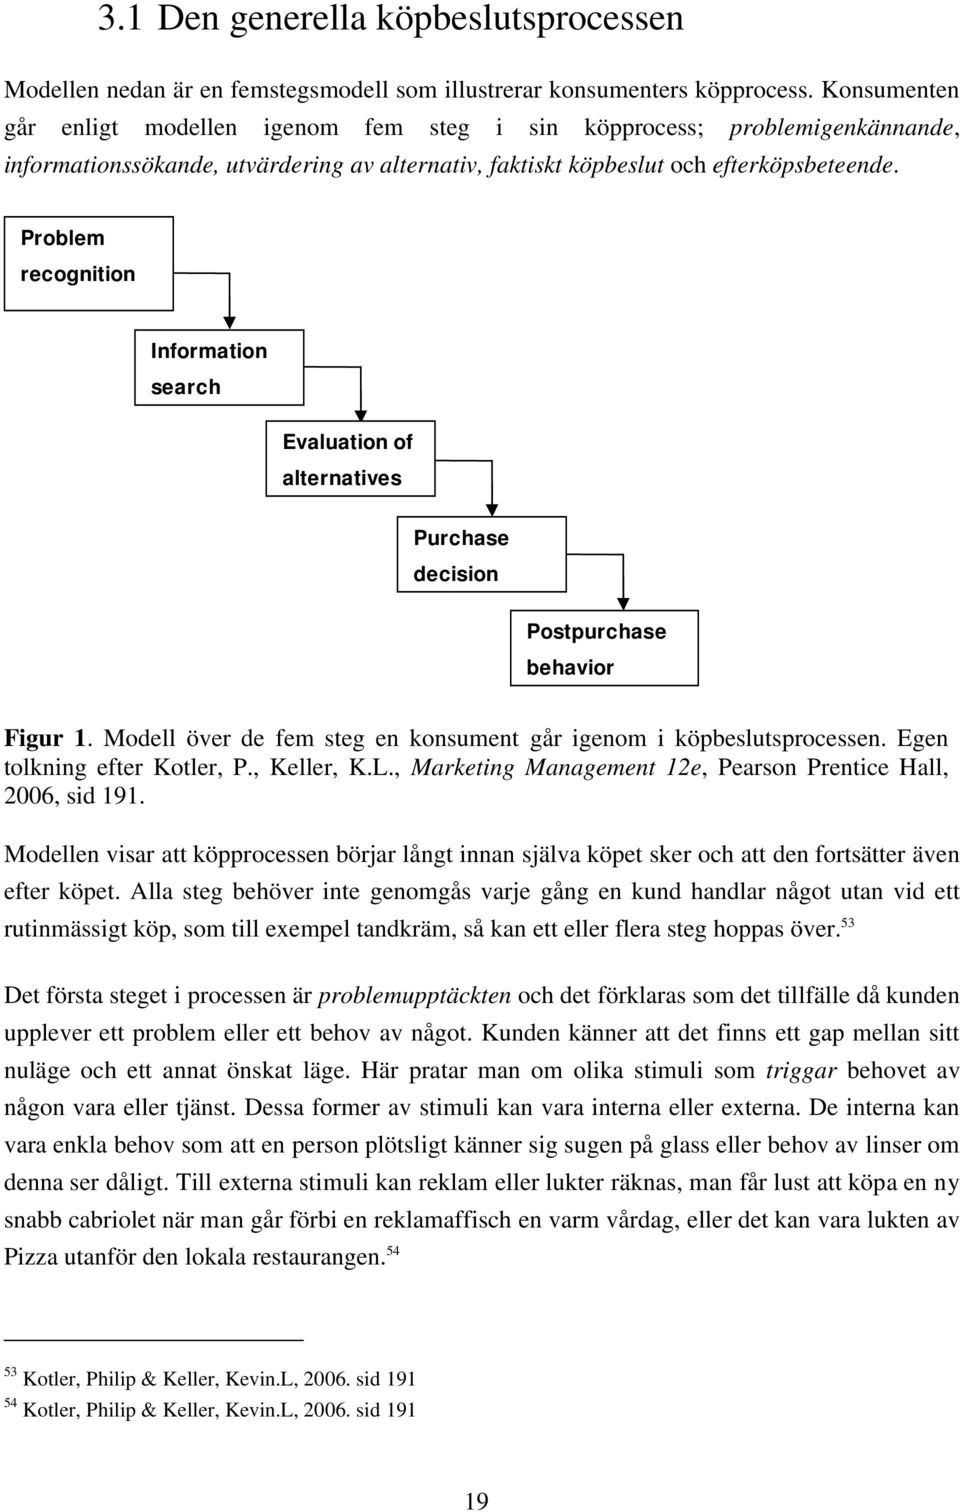 Problem recognition Information search Evaluation of alternatives Purchase decision Postpurchase behavior Figur 1. Modell över de fem steg en konsument går igenom i köpbeslutsprocessen.